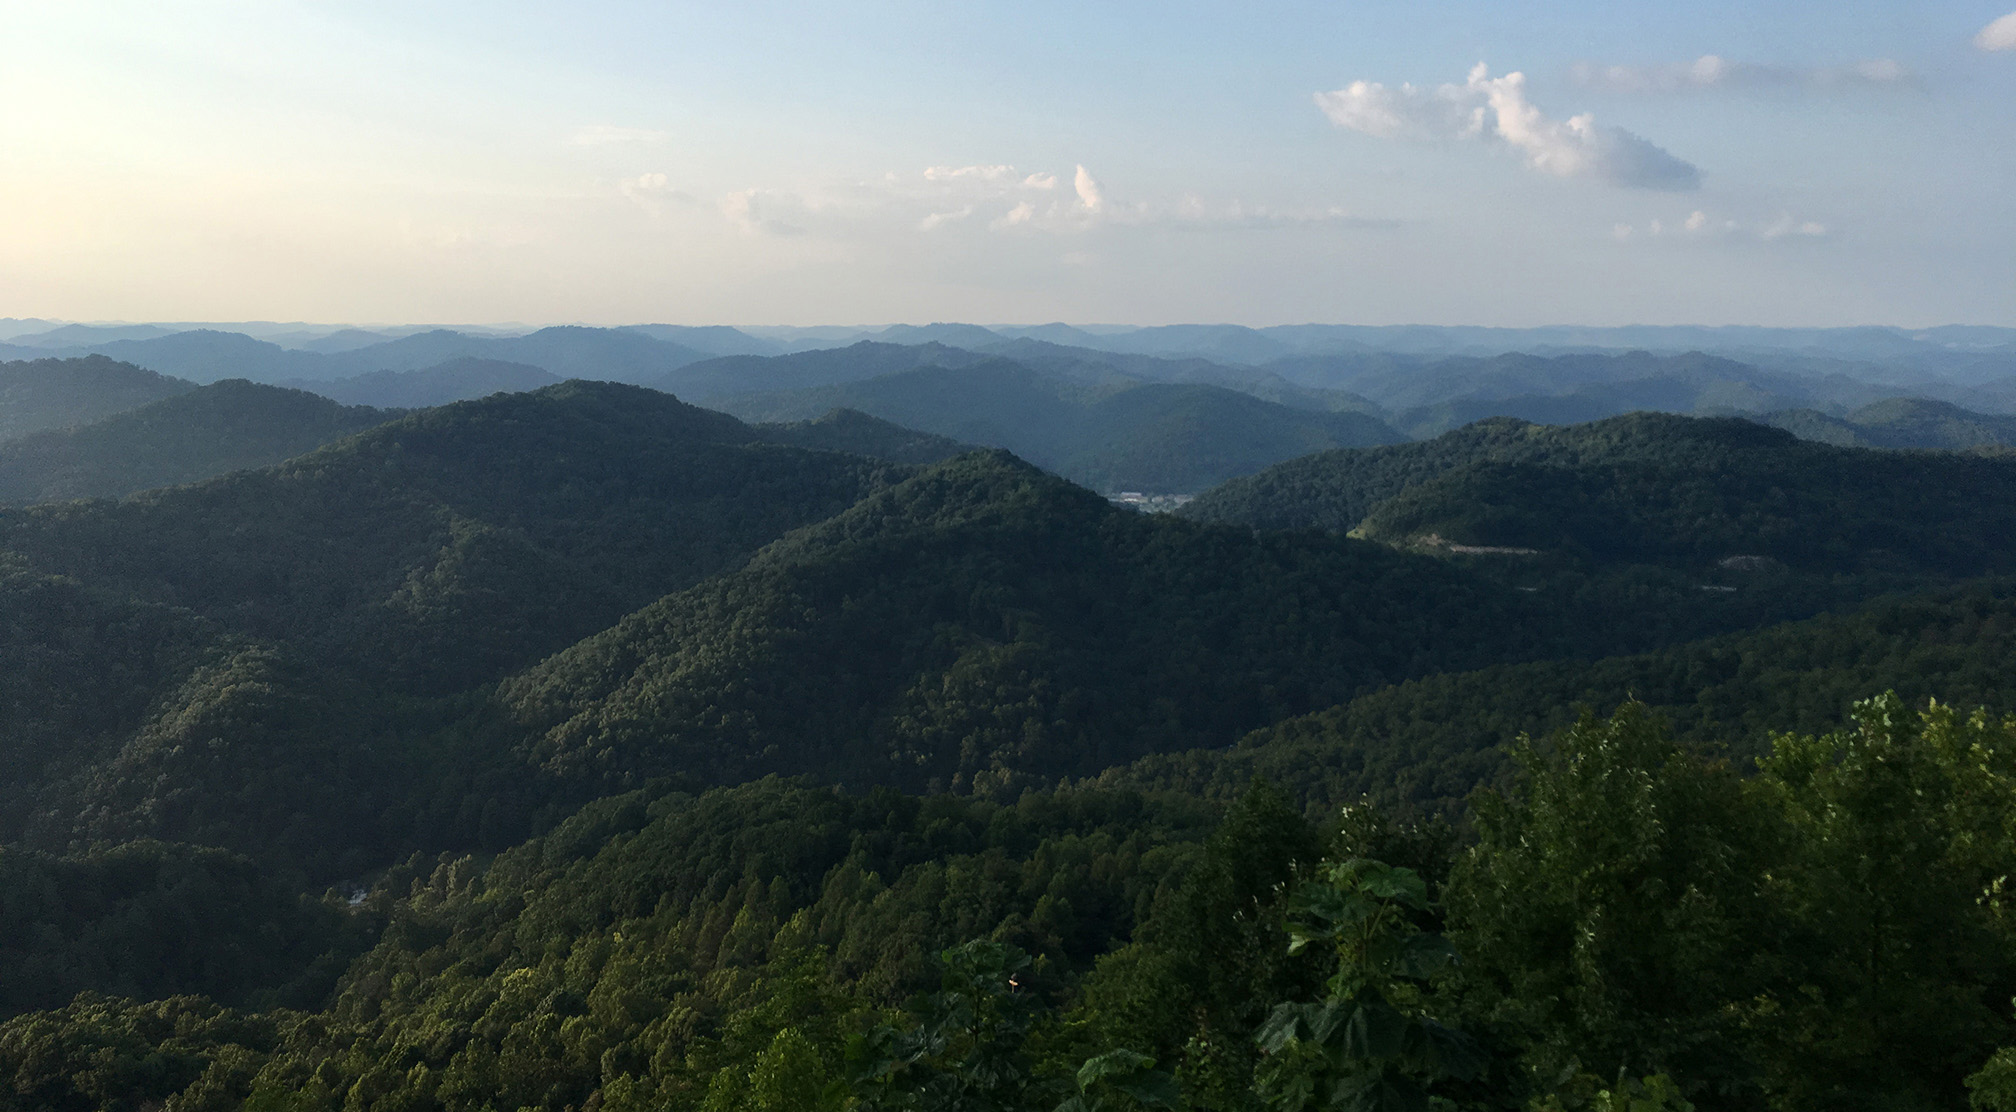 The Peaked And Rolling Hills Of Pine Mountain In KY